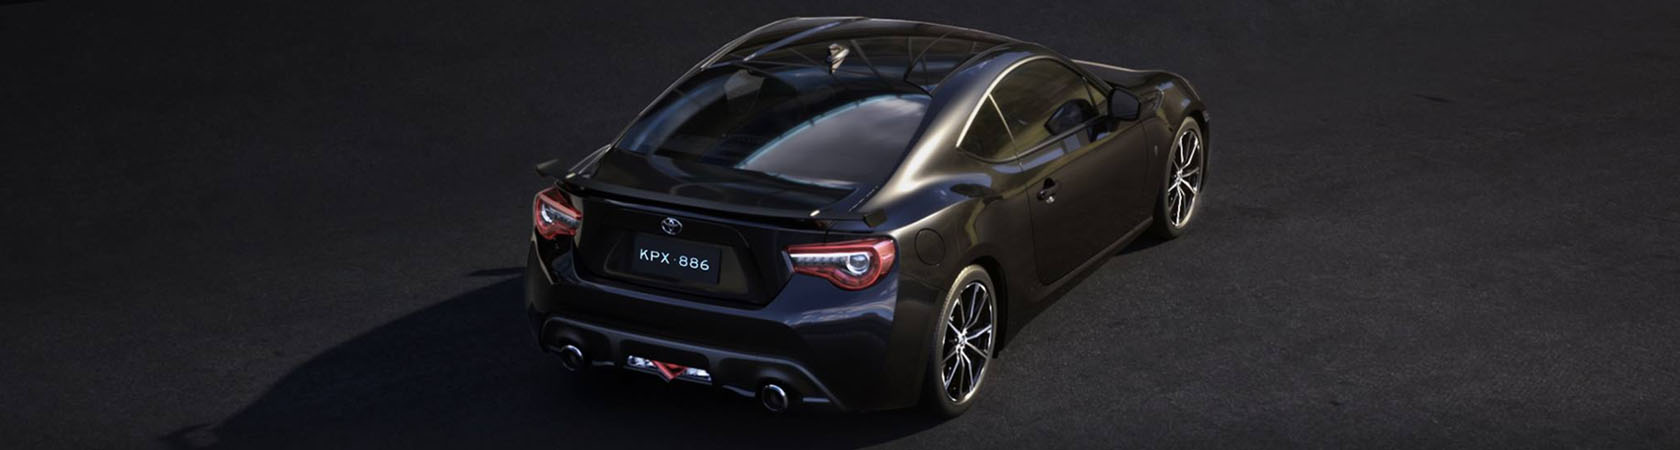 South Morang Toyota 86